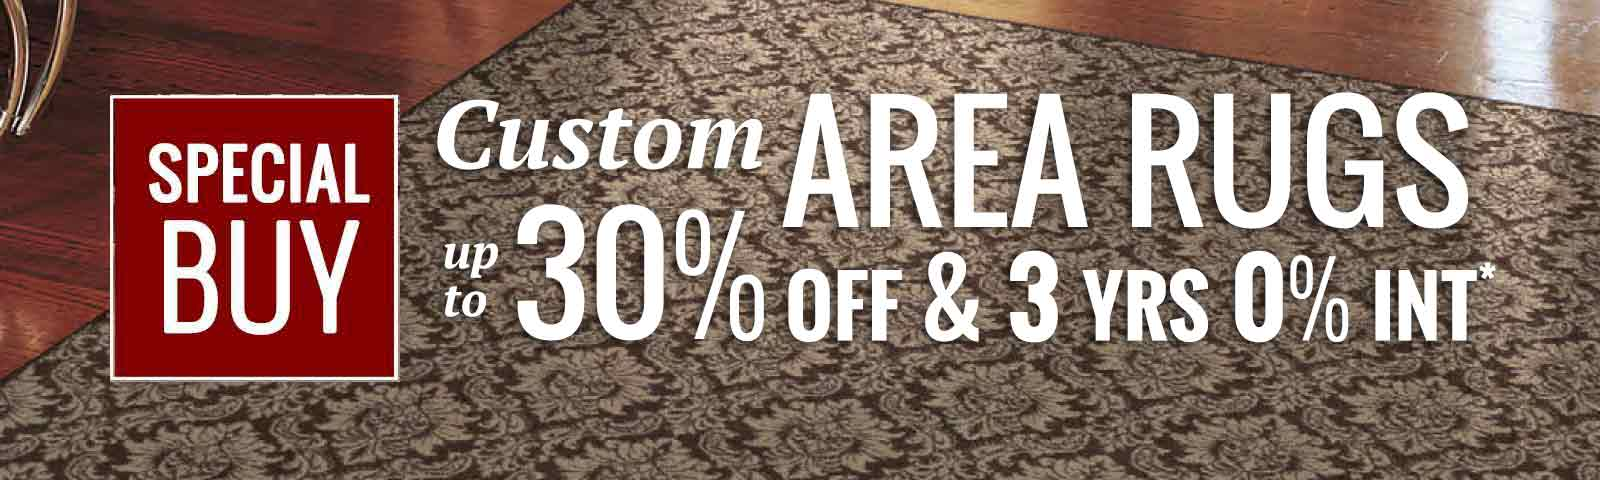 Pittsburgh custom area rug sale